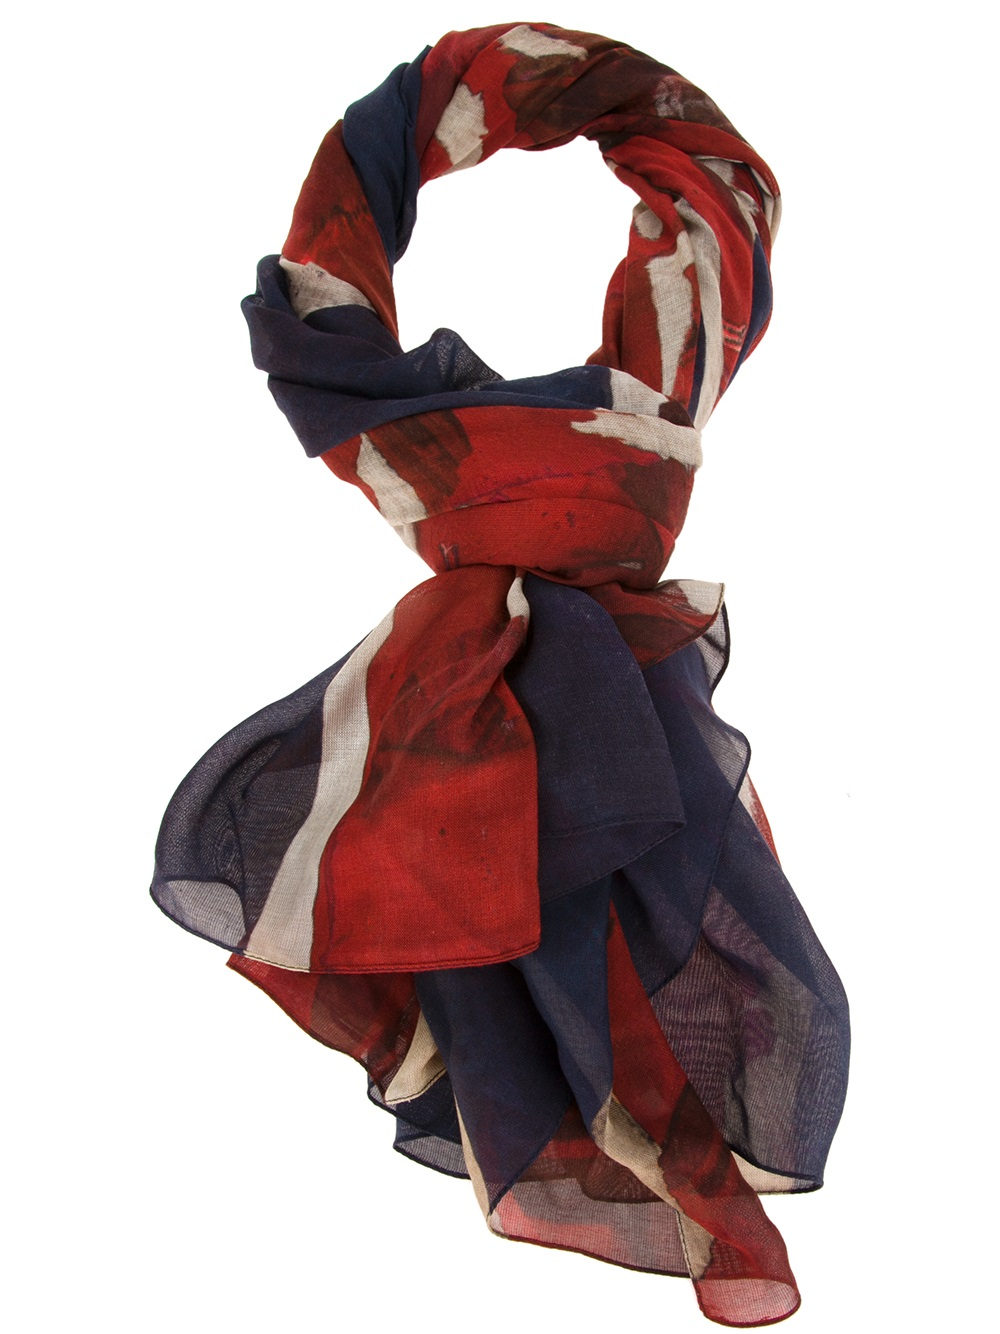 Lyst Alexander mcqueen Union Jack Scarf in Red for Men